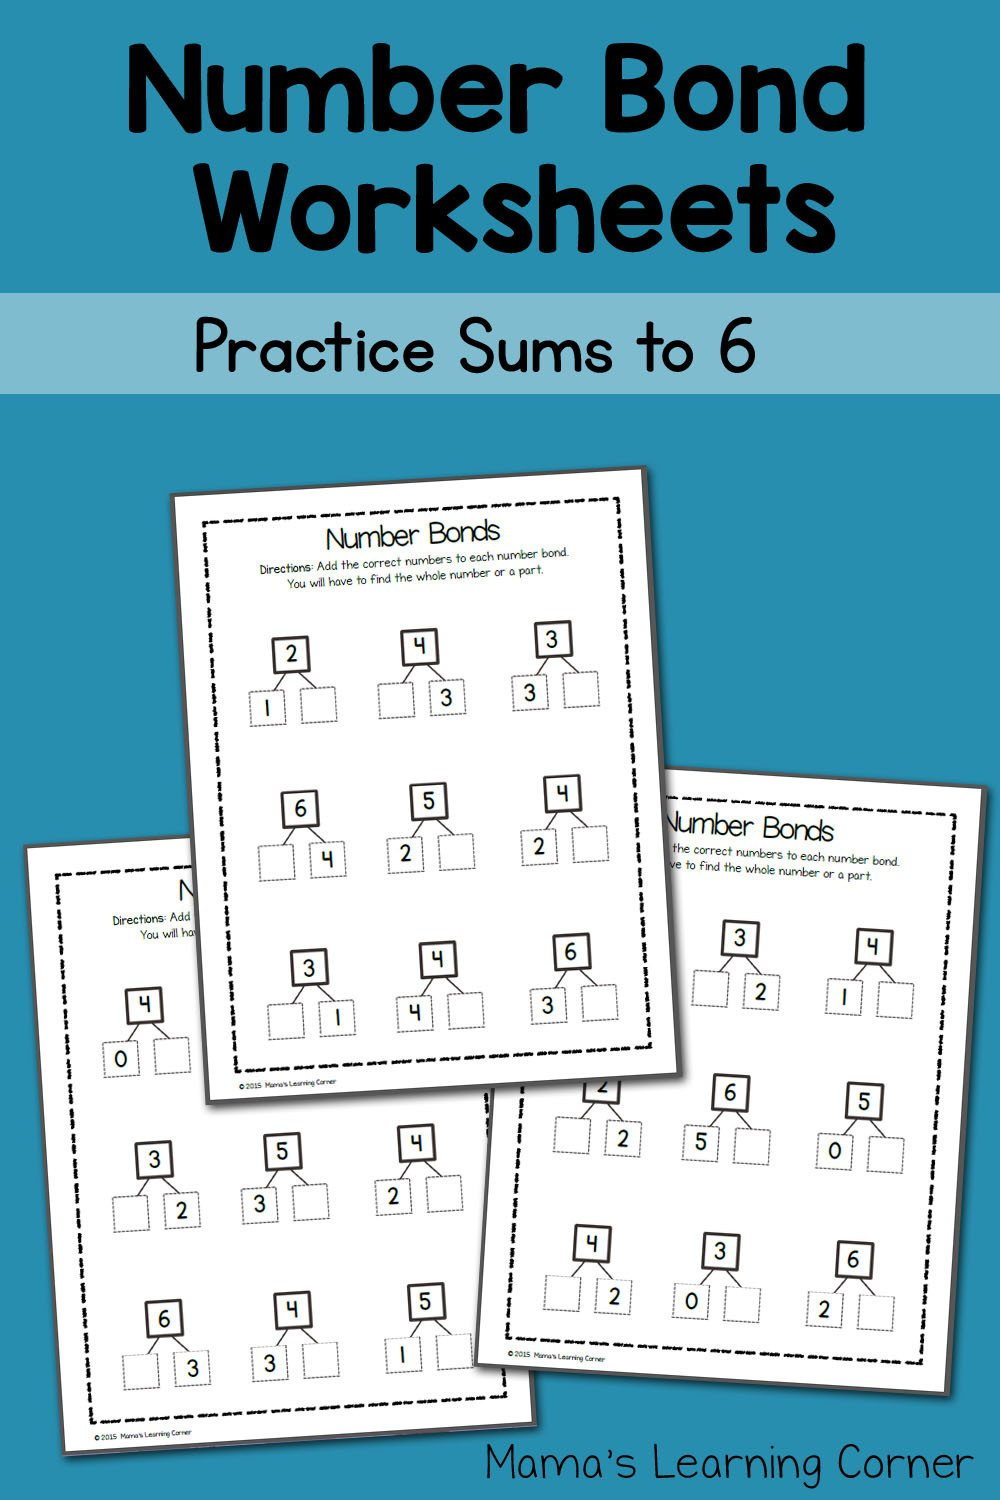 Number Bonds Worksheets Kindergarten Number Bond Worksheets Sums to 6 Mamas Learning Corner